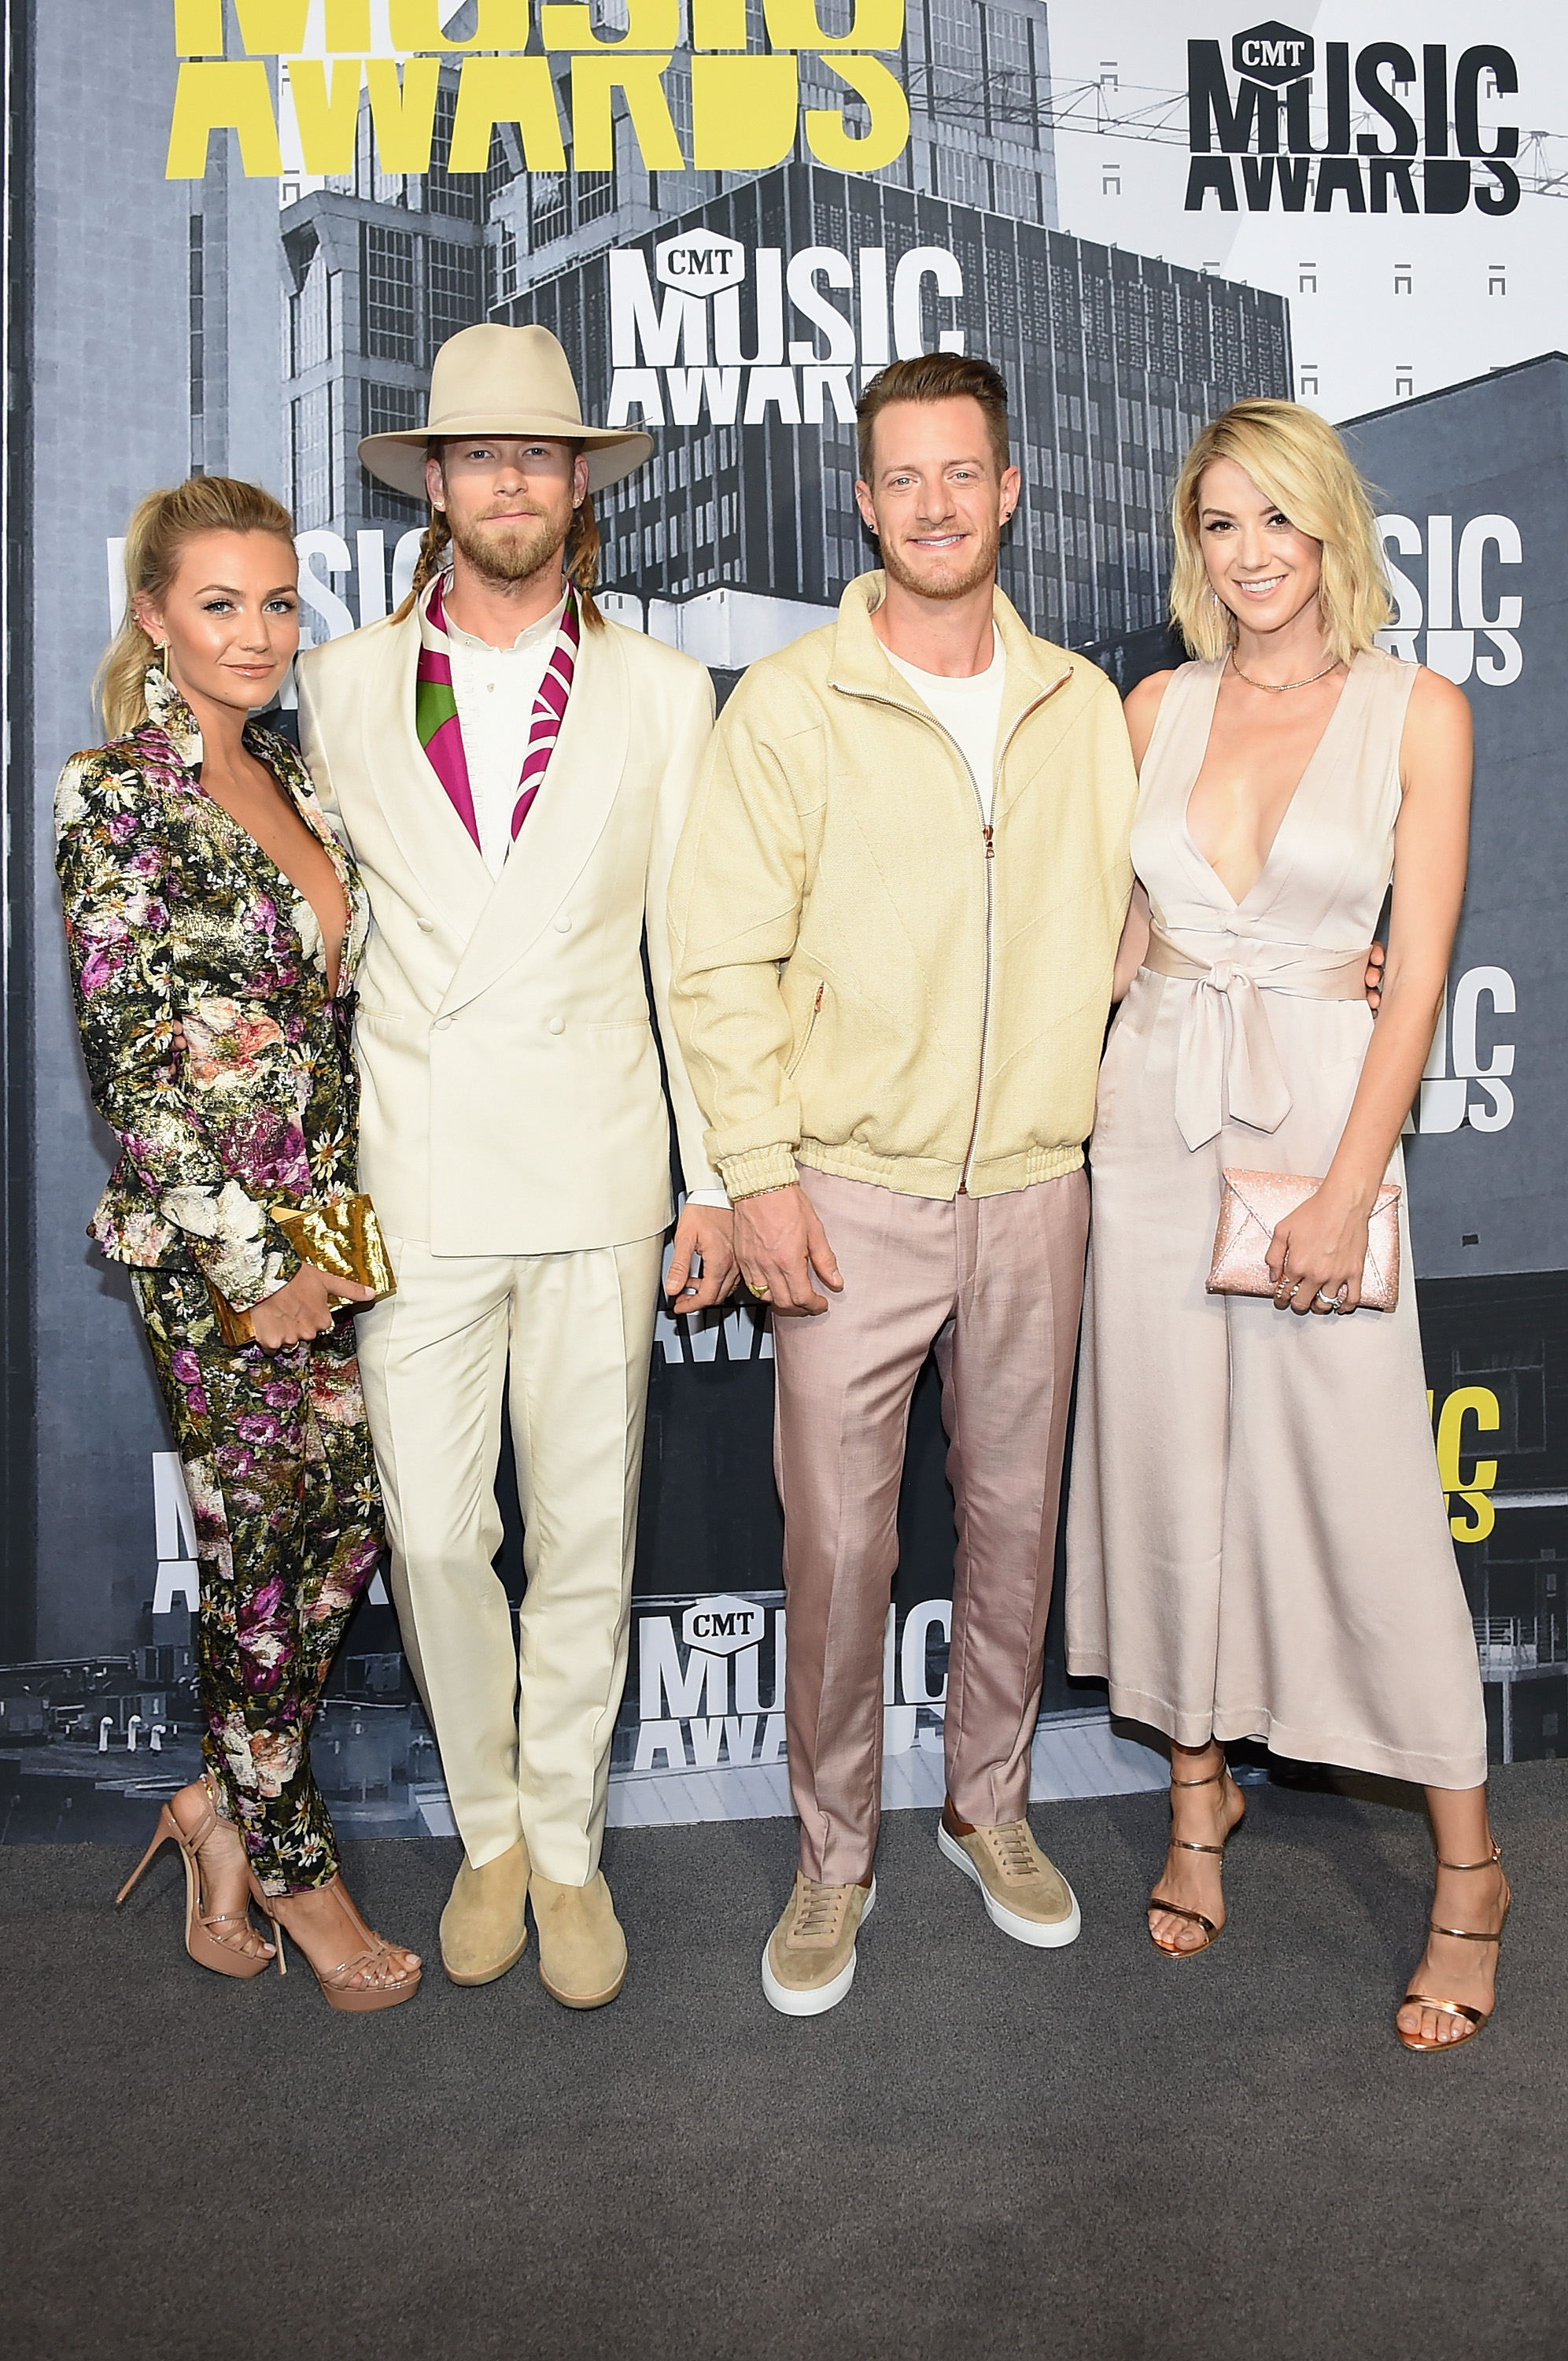 Florida Georgia Line; Photo by Michael Loccisano/Getty Images For CMT